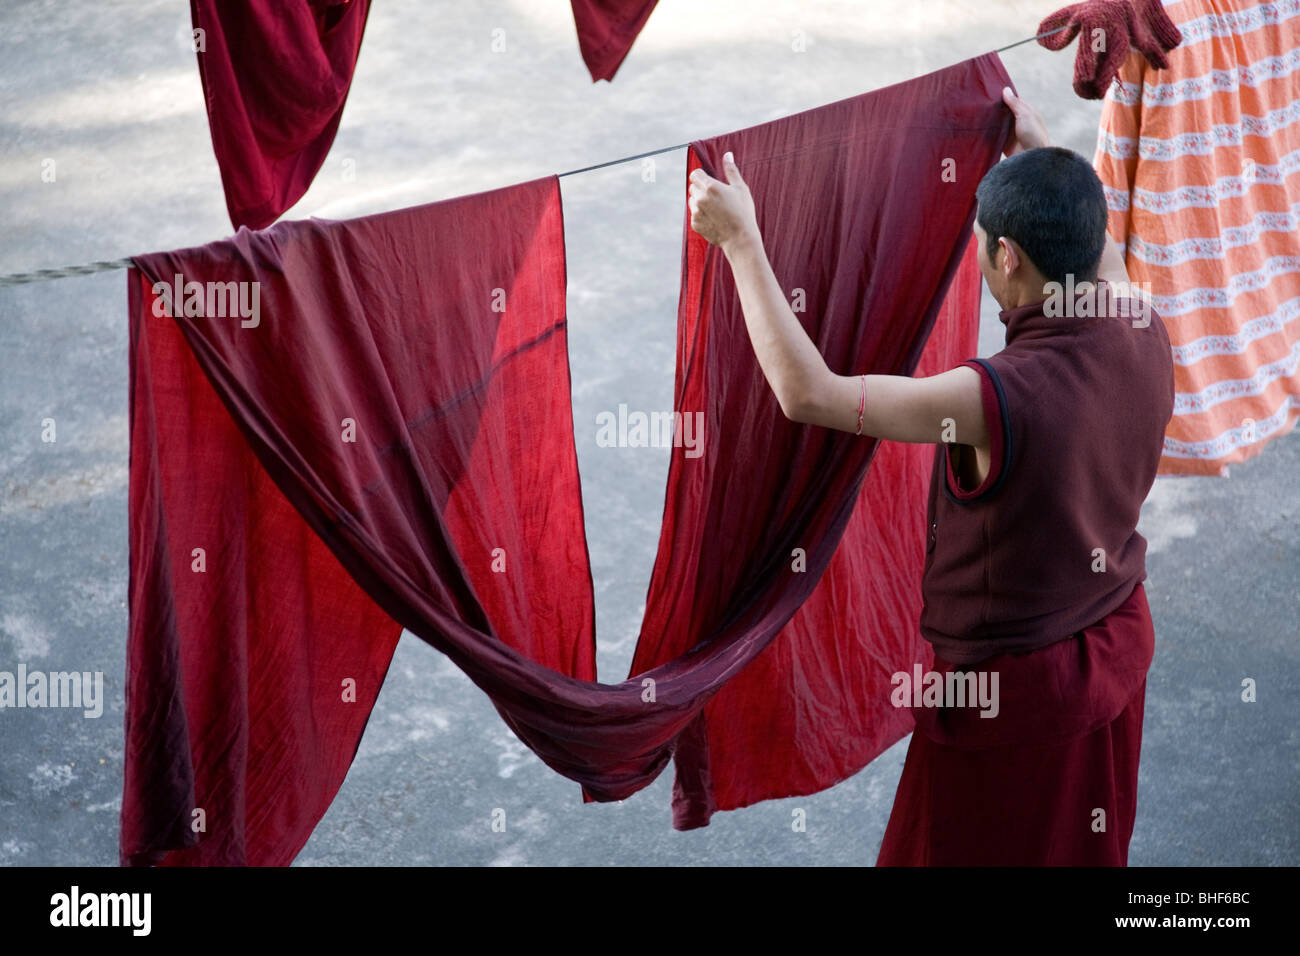 Buddhist monk putting a robe on the clothes line. McLeod Ganj. Dharamsala. India - Stock Image